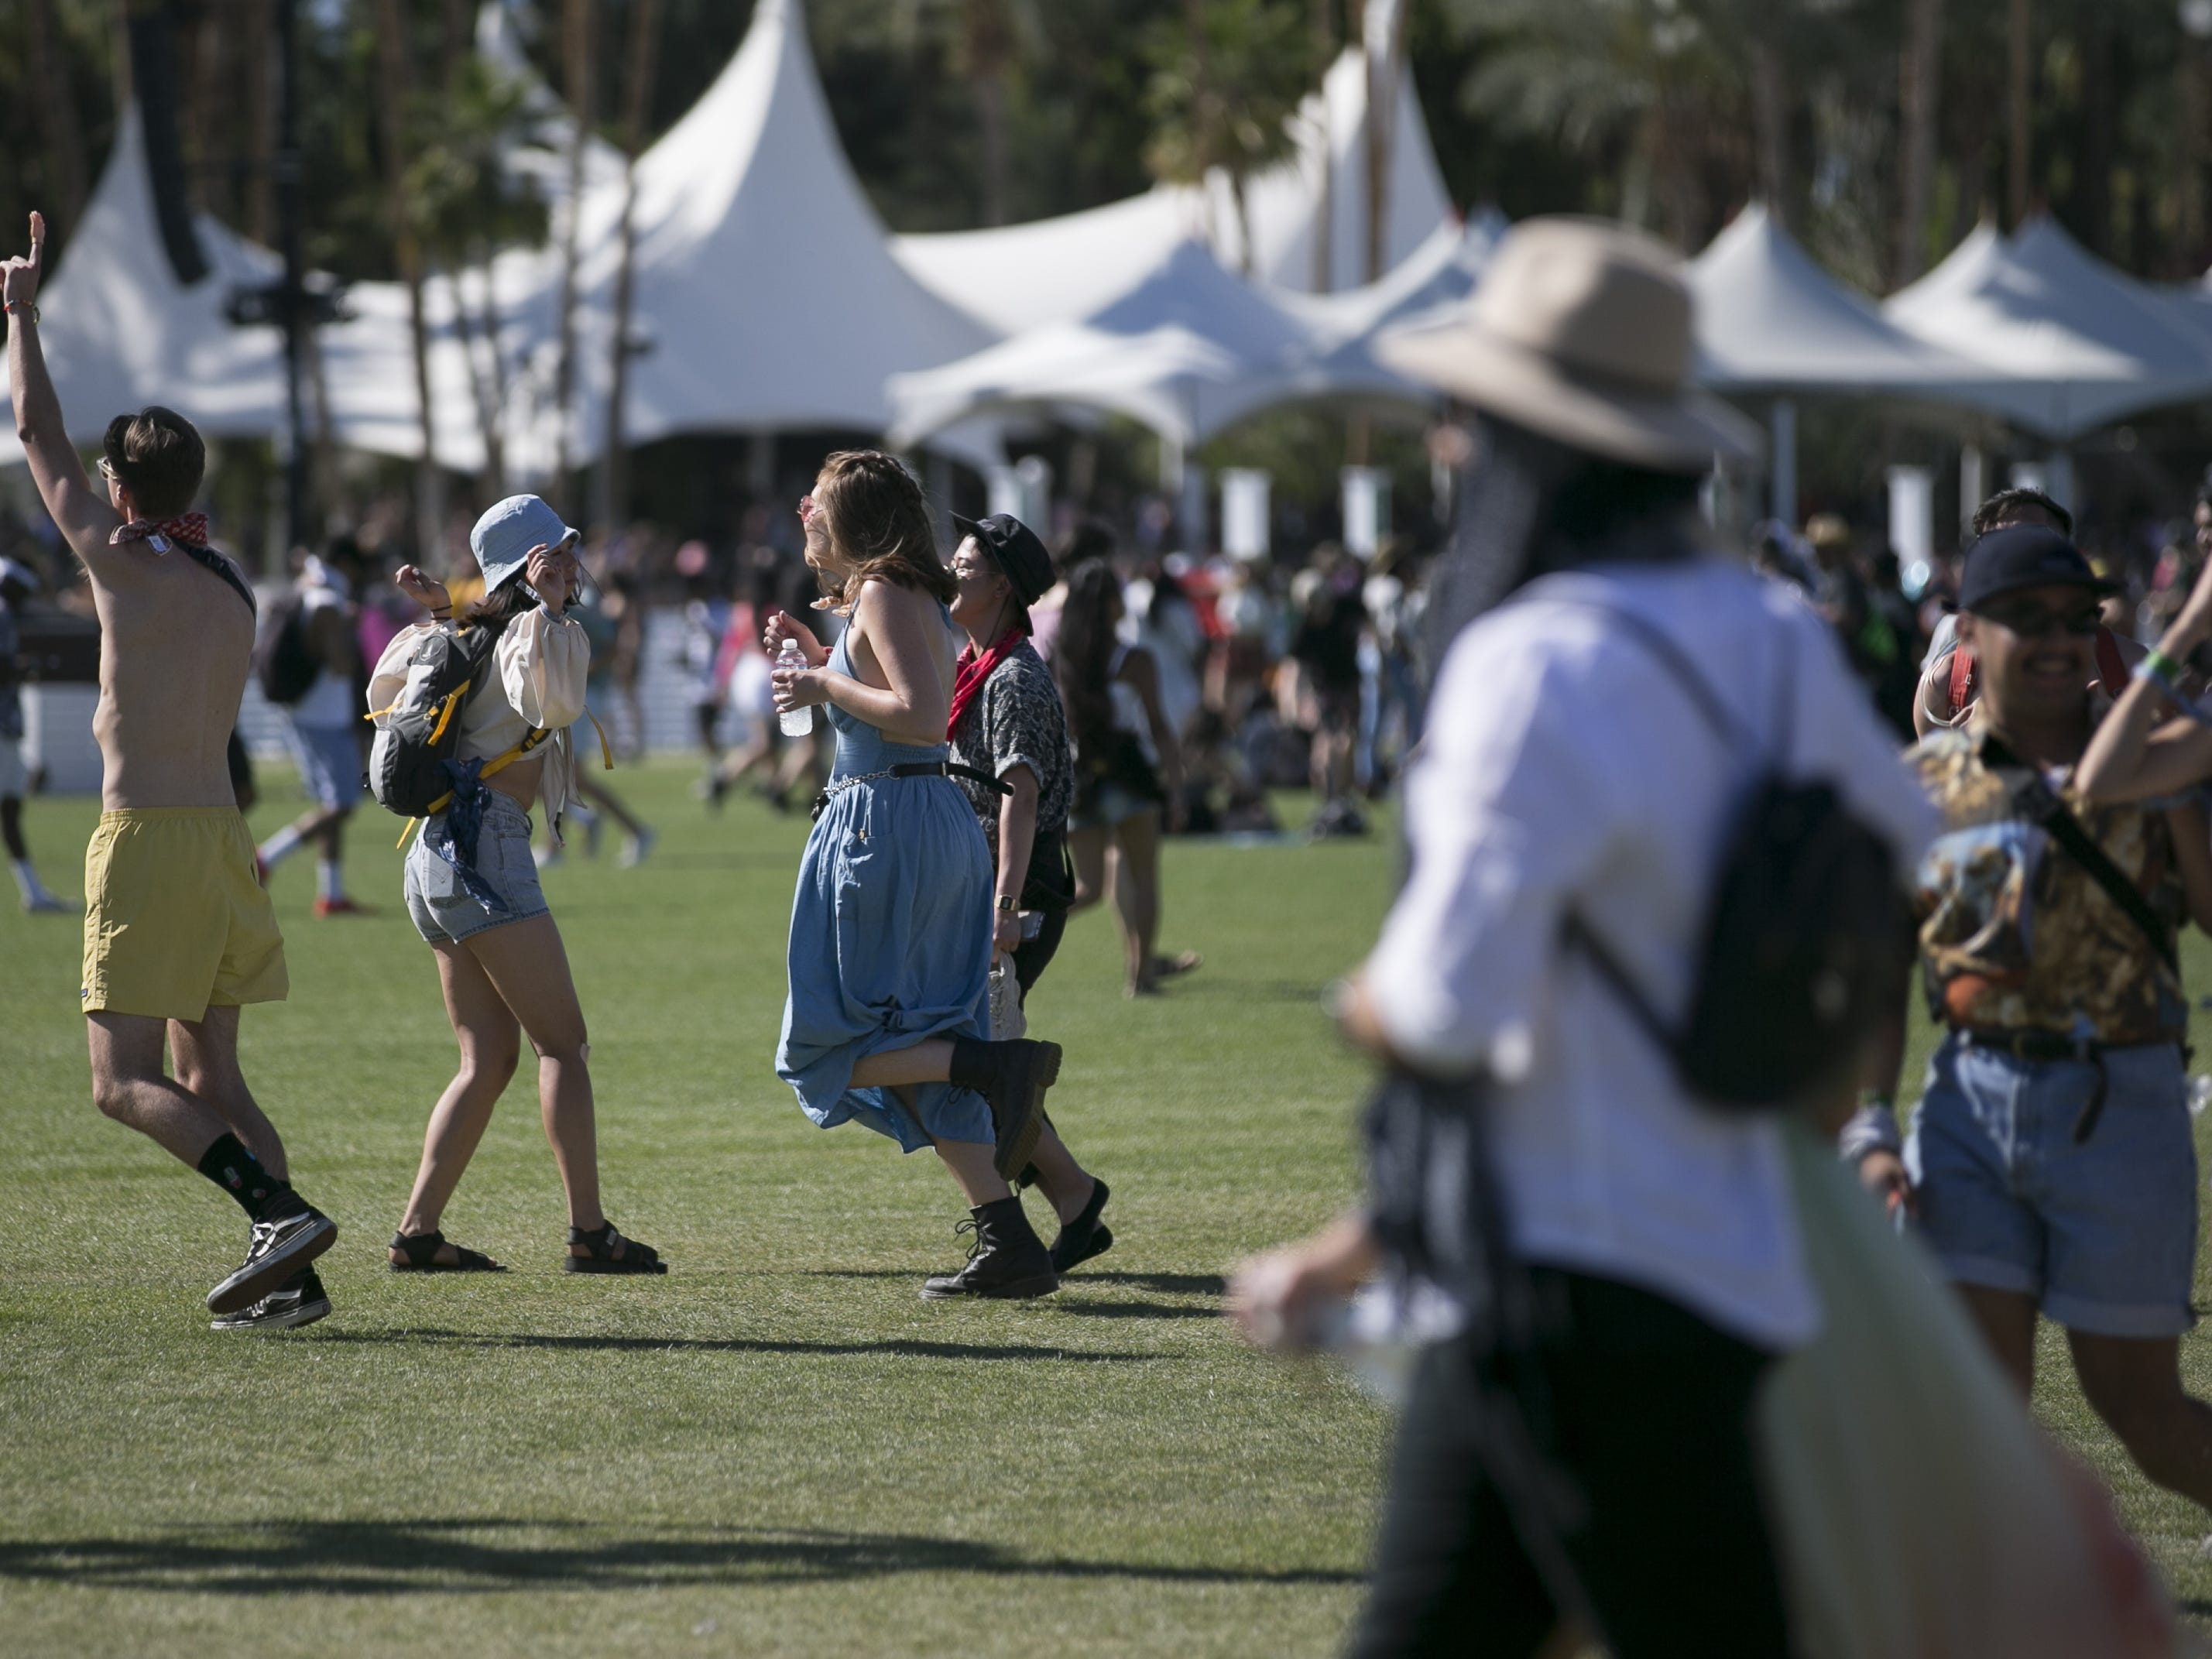 Festival-goers walk through the festival grounds at the Coachella Valley Music and Arts Festival in Indio, Calif. on April 12, 2019.